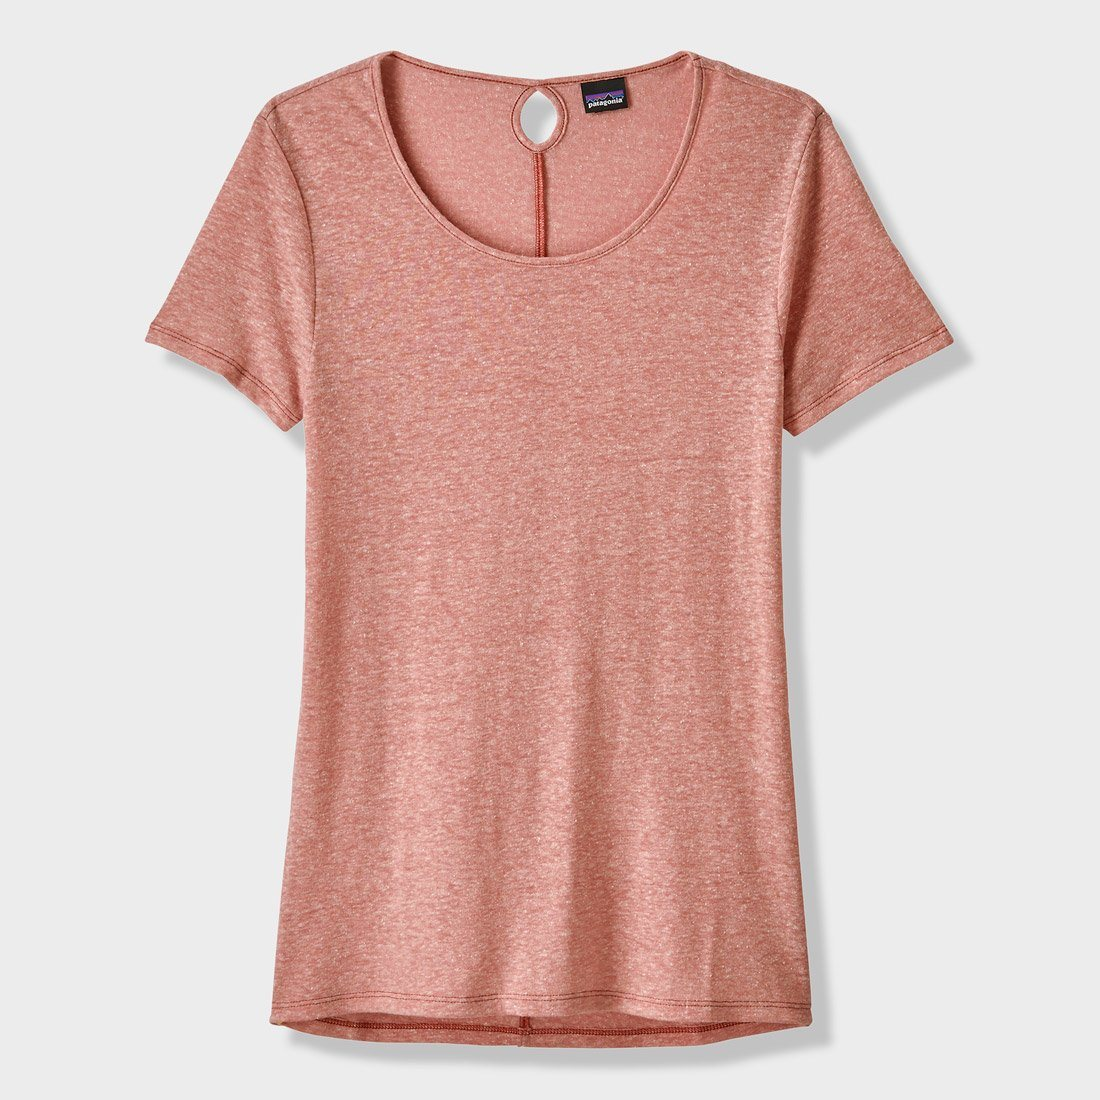 Patagonia Women's Mount Airy Scoop Air T-Shirt Flora Pink